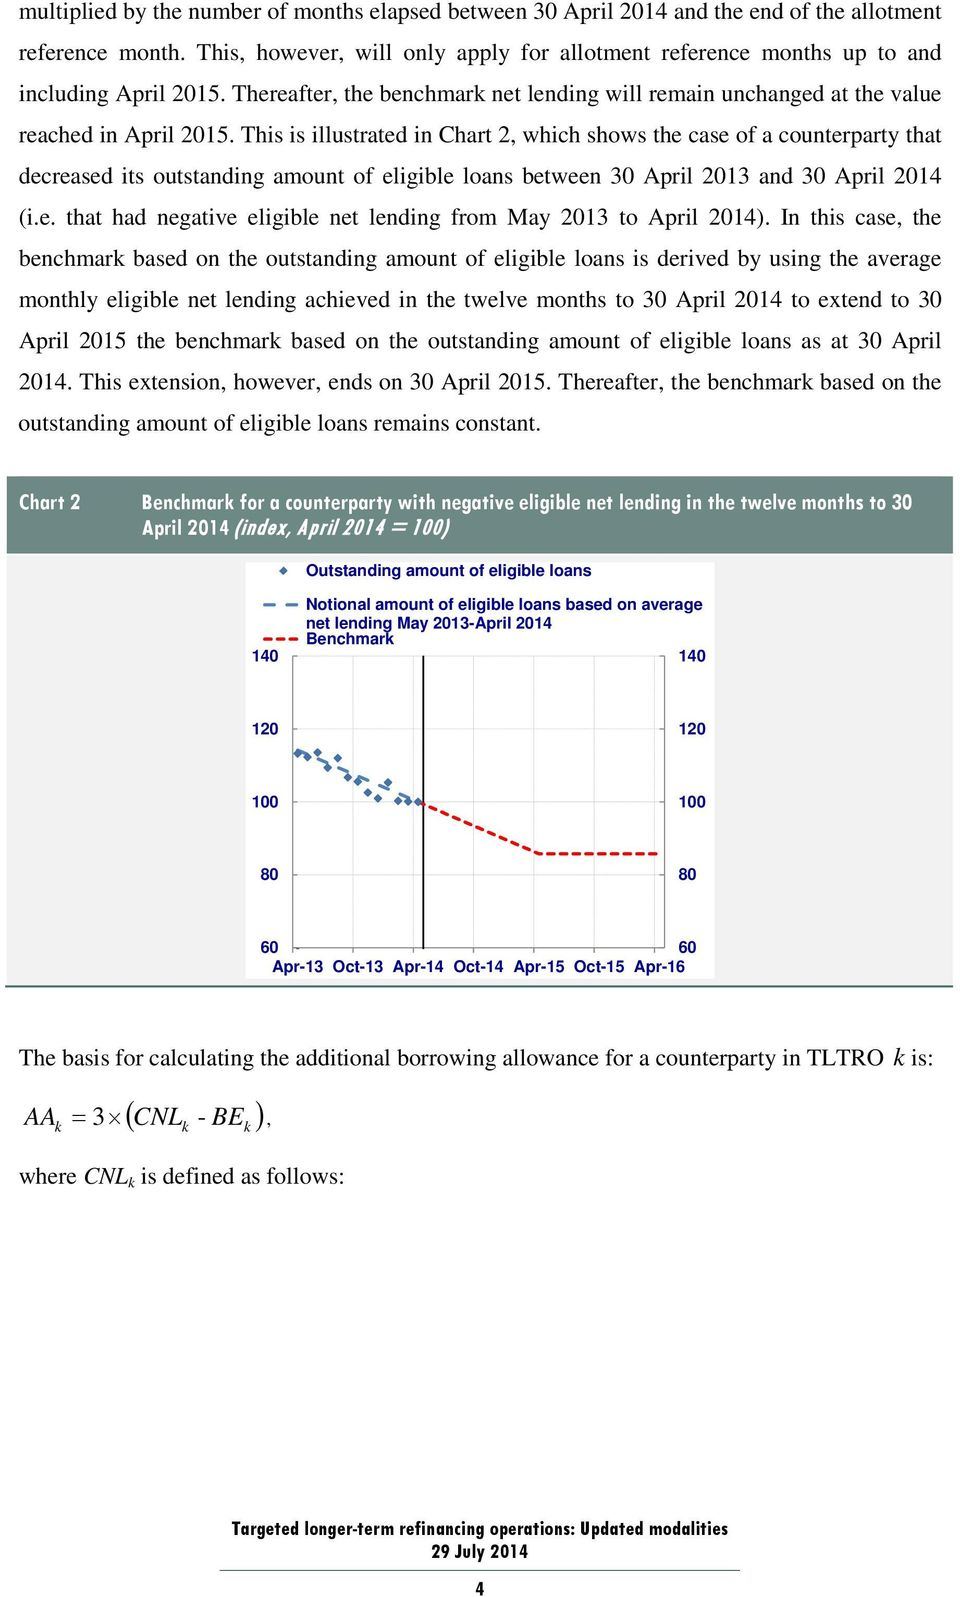 This is illustrated in Chart 2, which shows the case of a counterparty that decreased its outstanding amount of eligible loans between 0 April 201 and 0 April 2014 (i.e. that had negative eligible net lending from May 201 to April 2014).